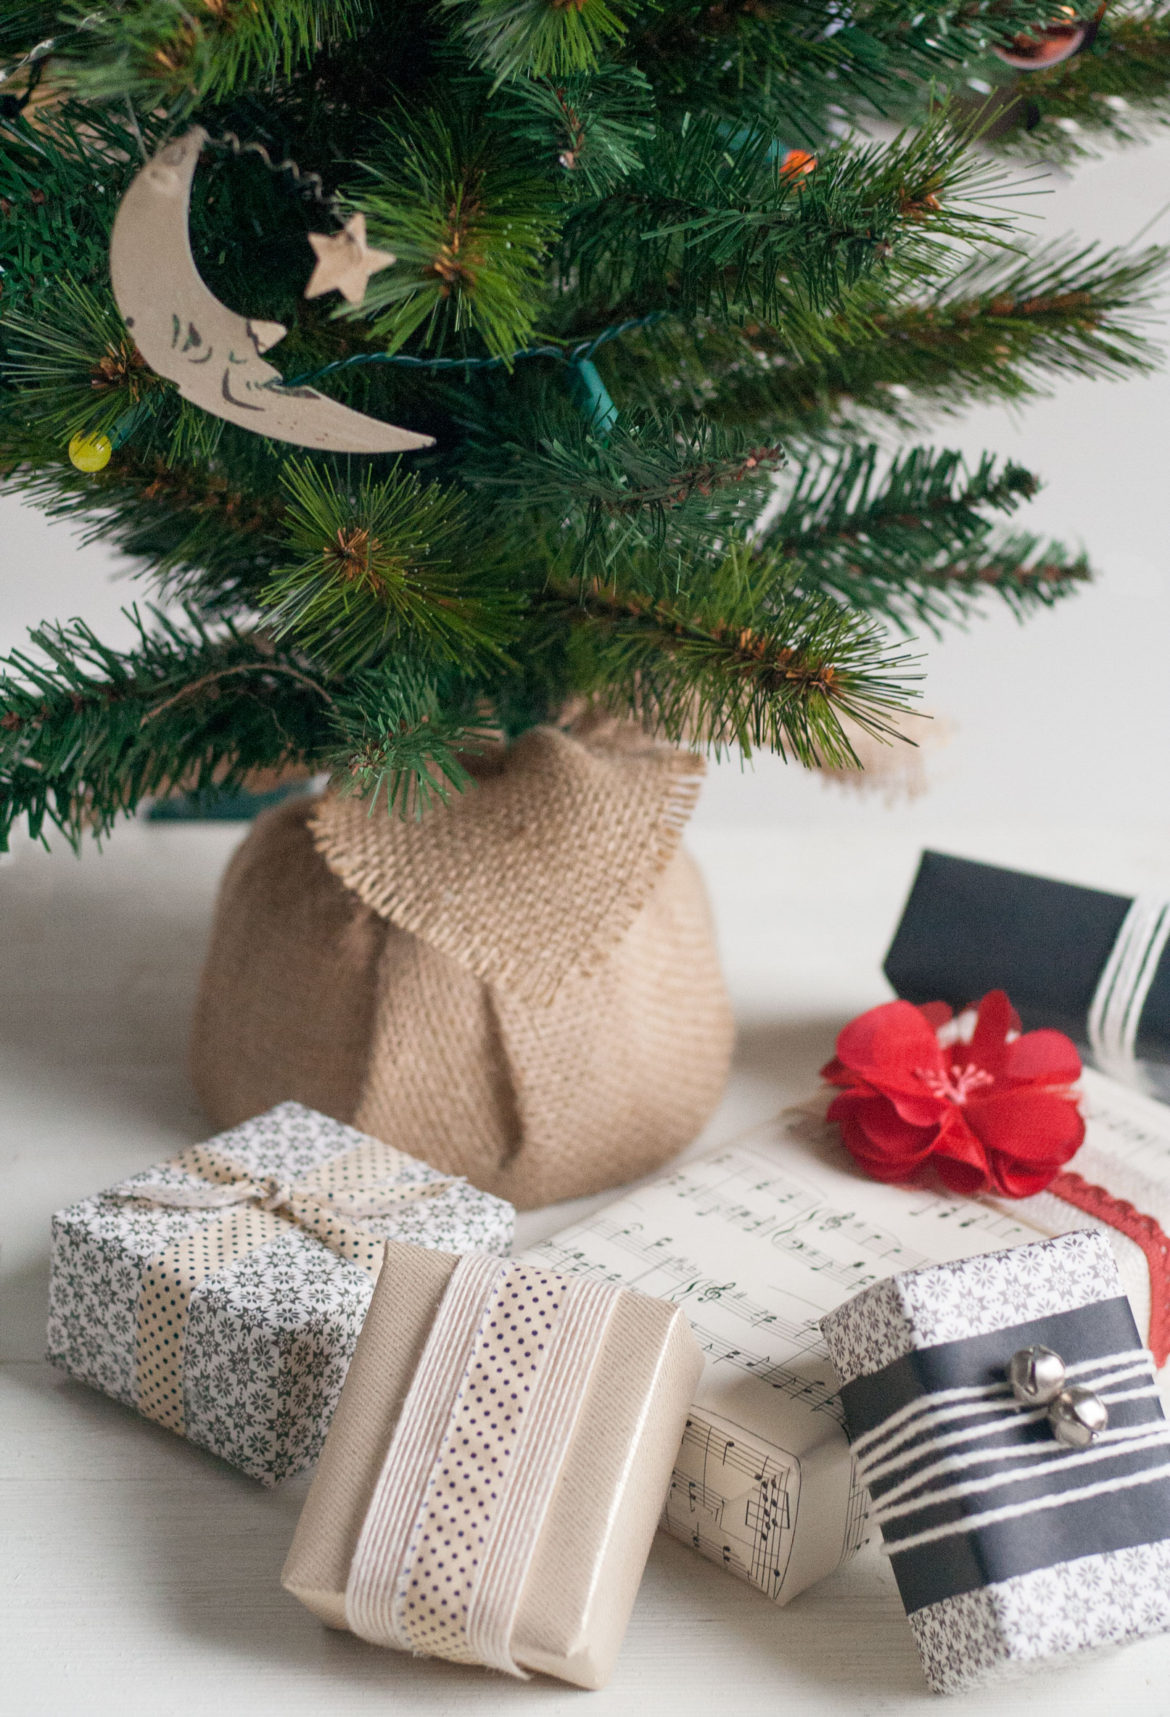 bit-and-bauble-pretty-chic-gift-wrap-christmas-presents-ideas-6